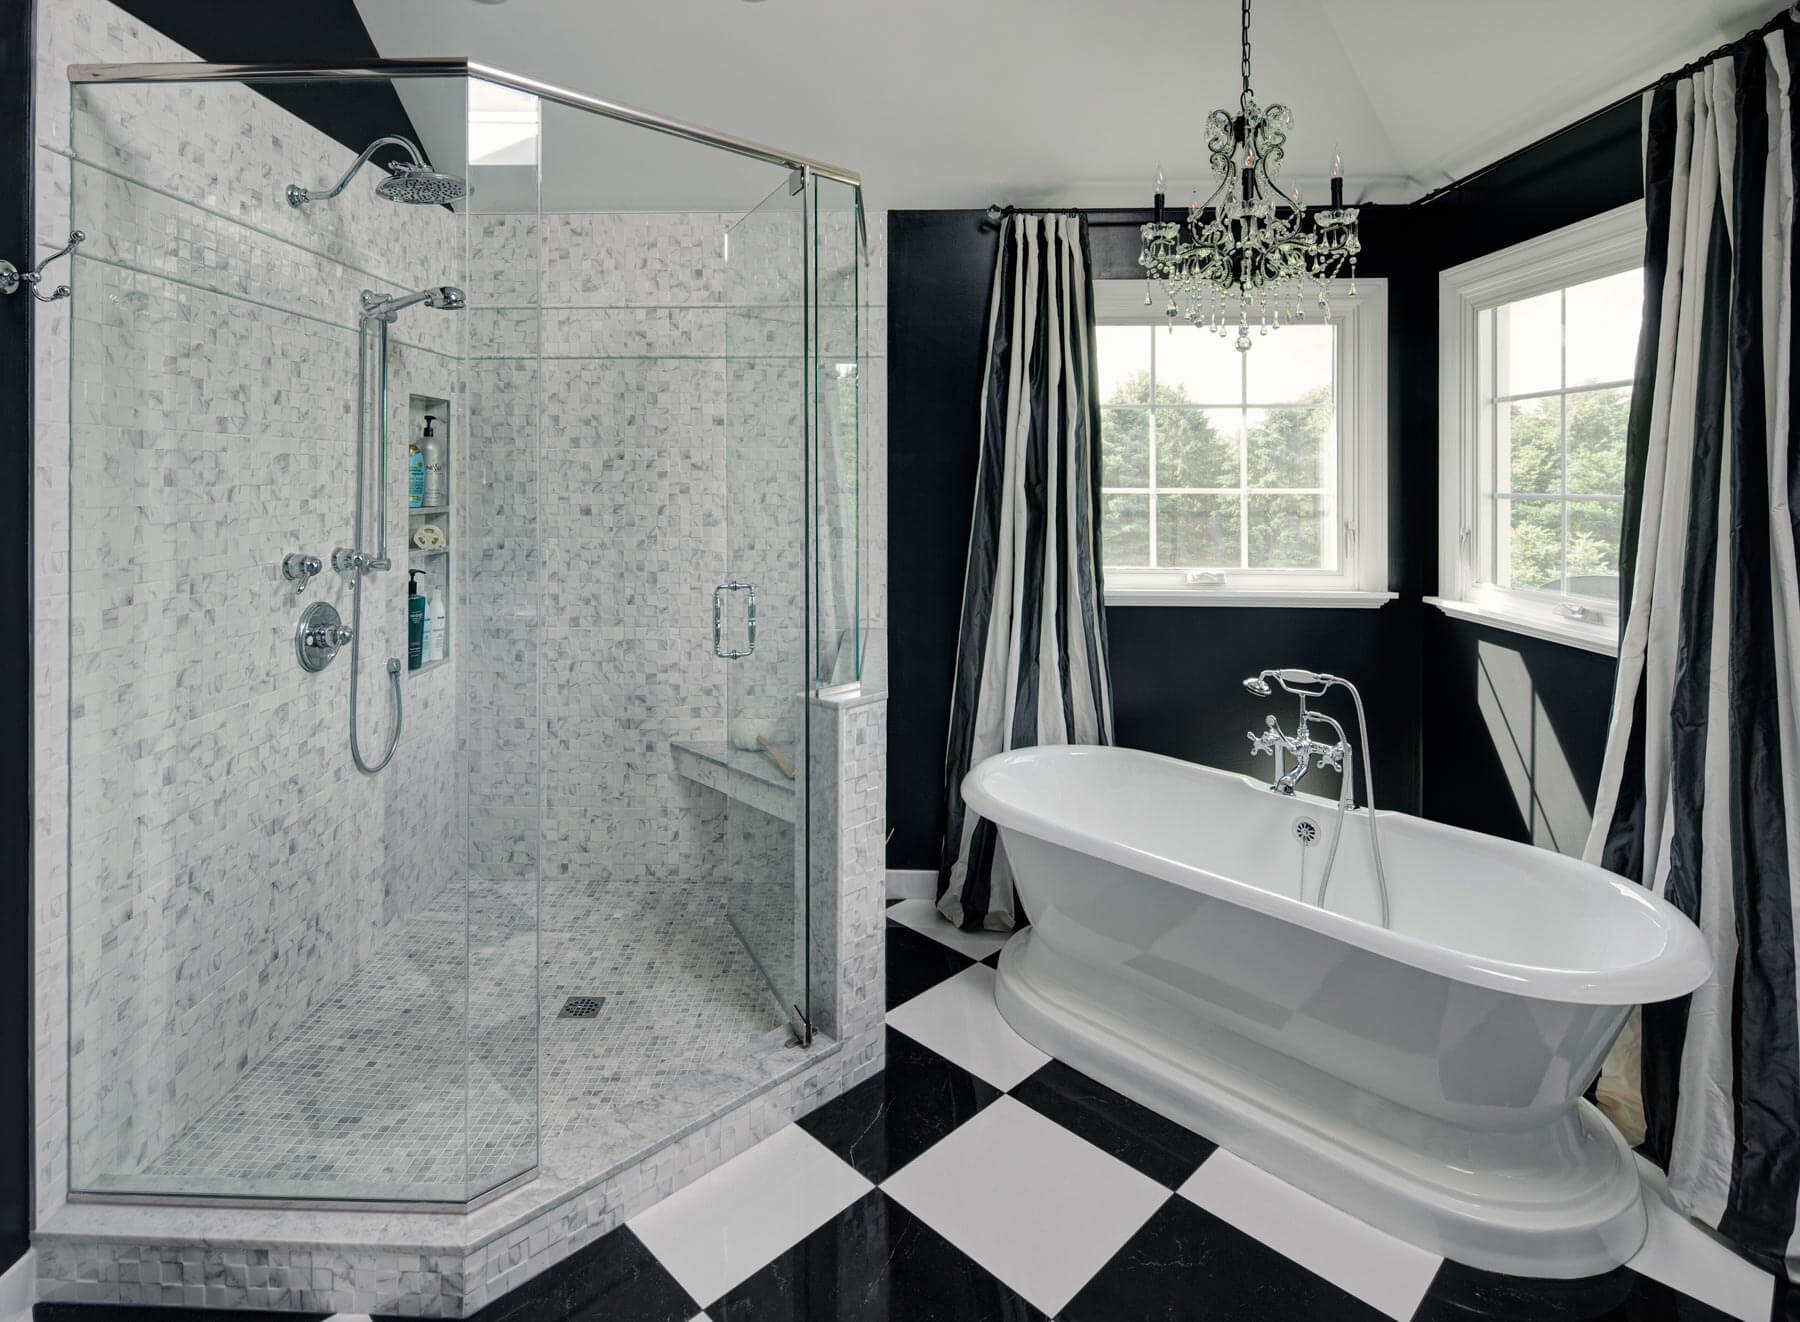 Immense glass shower is wrapped in diffuse tiling, next to an elegant free standing soaking tub. A pair of windows and chandelier in this corner adds a touch of inviting charm to the bathing space.